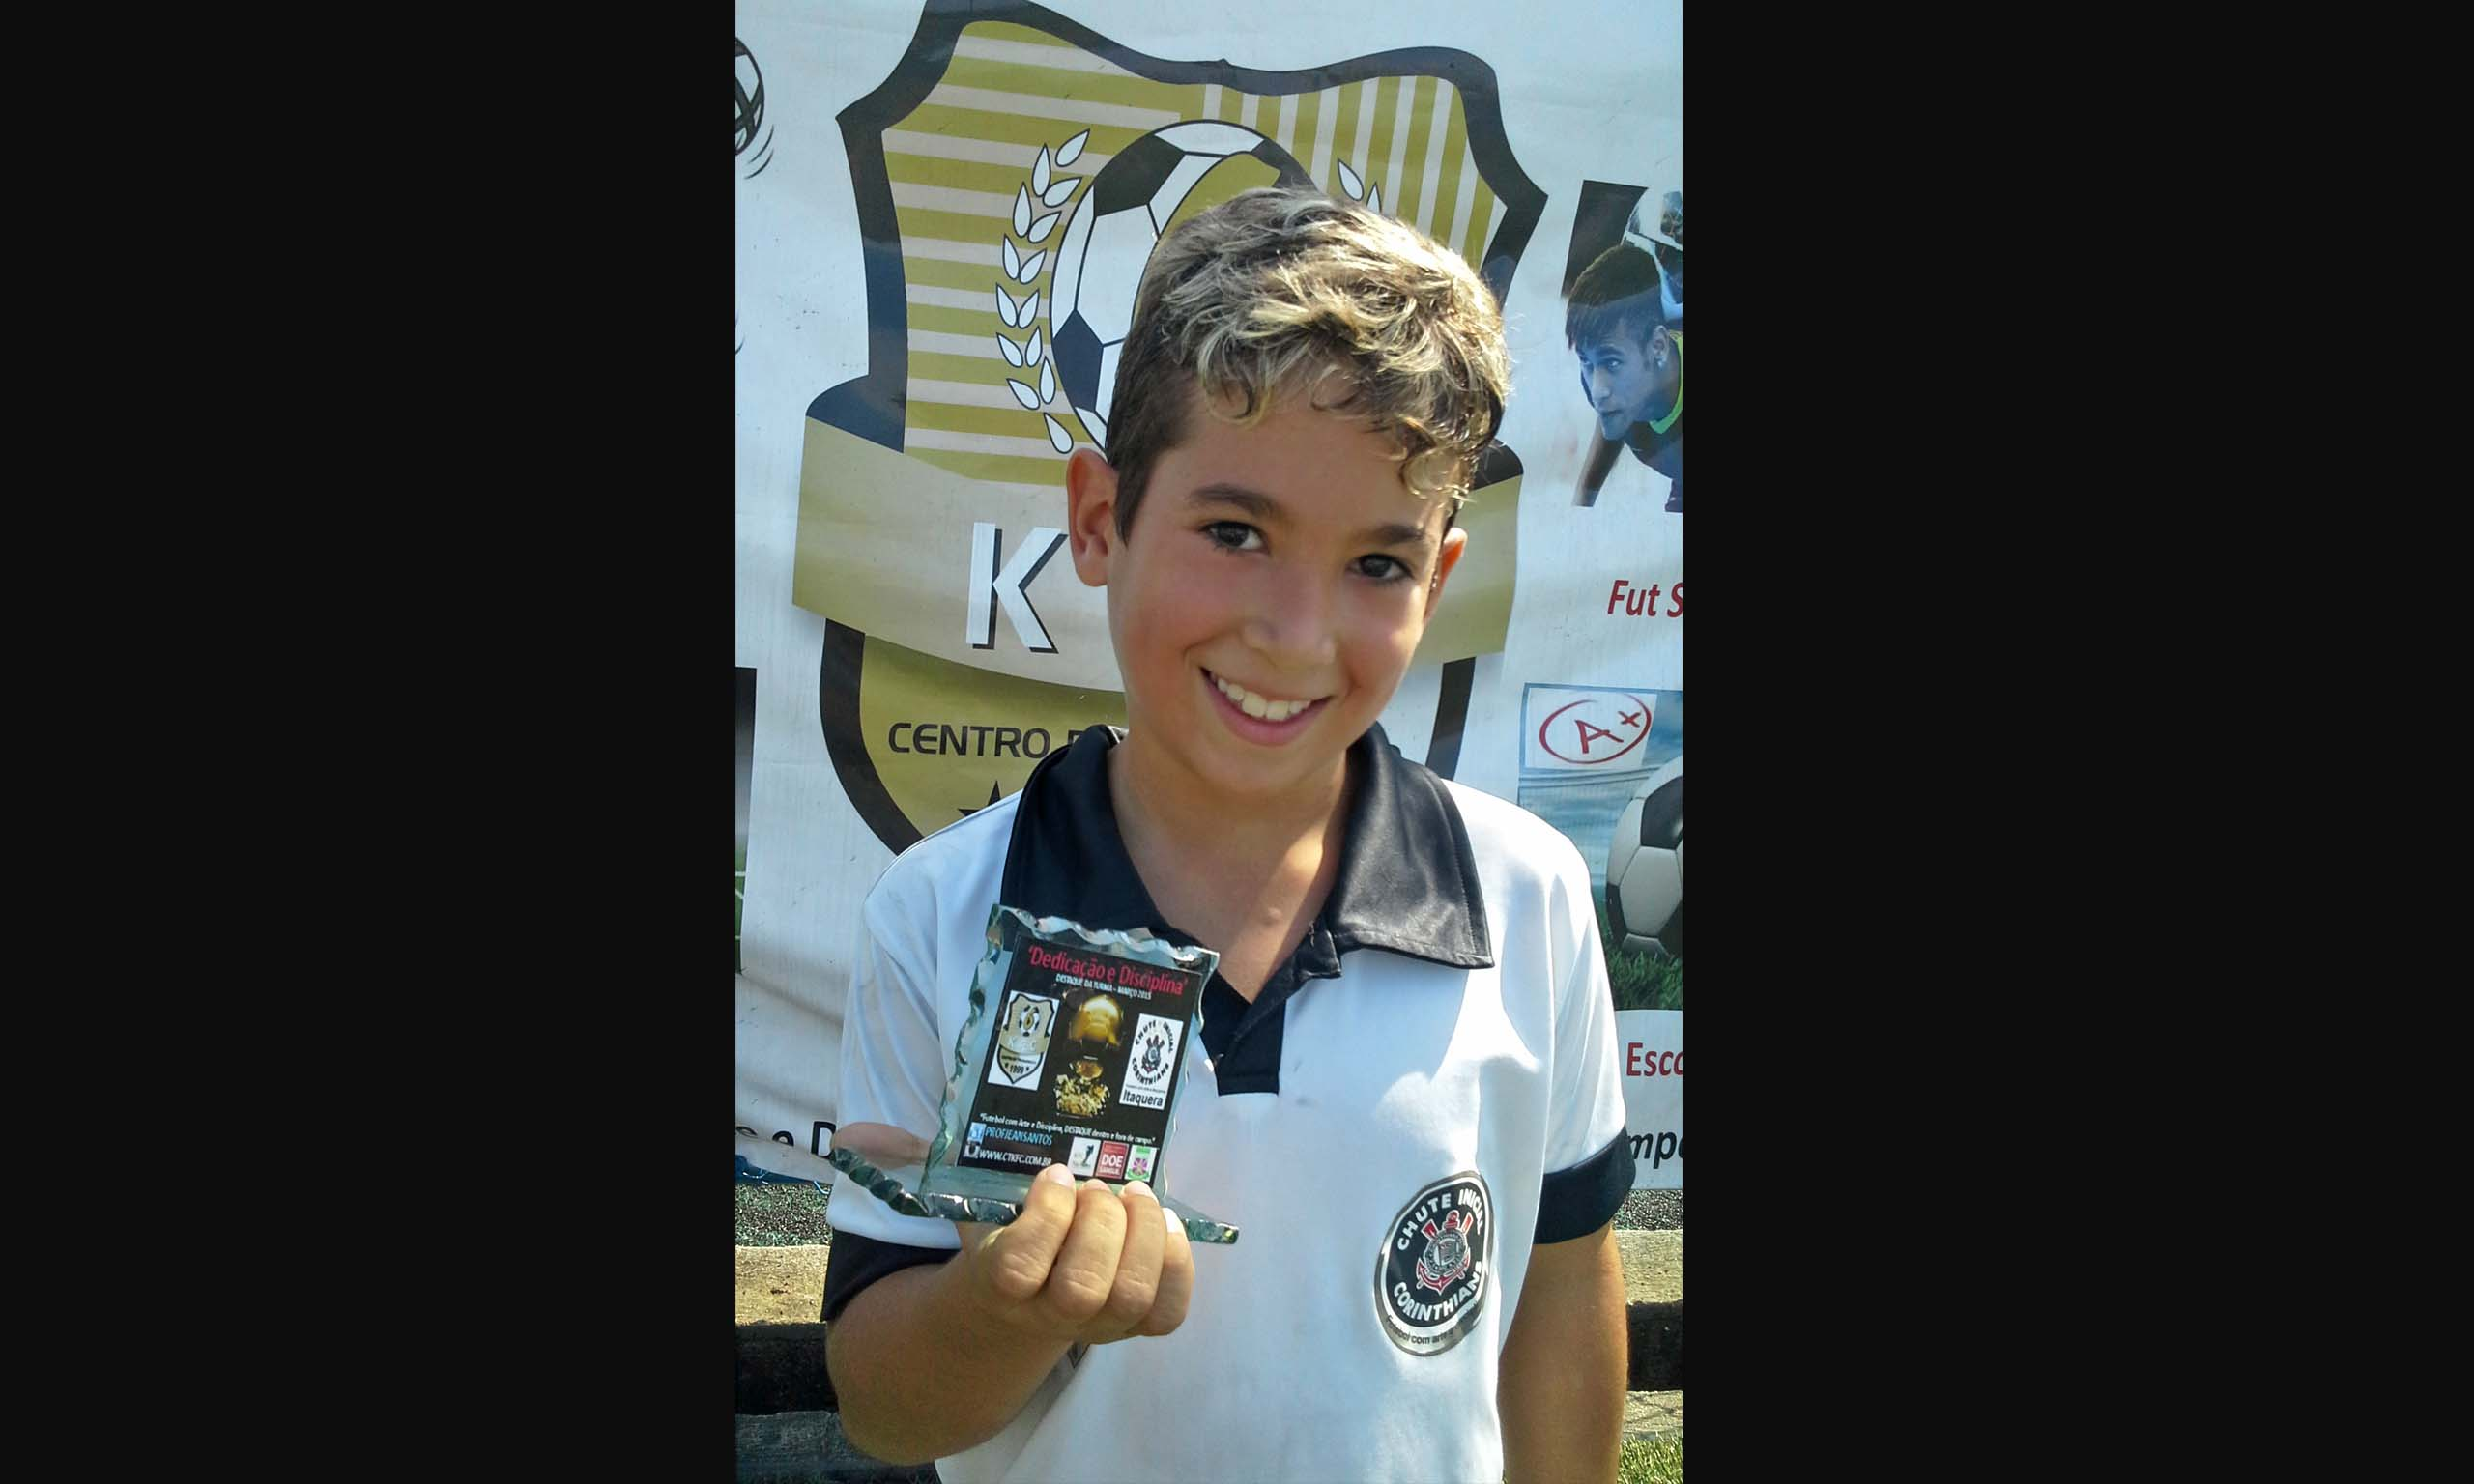 FRANCISCO HENRIQUE_06_TQ 8H30